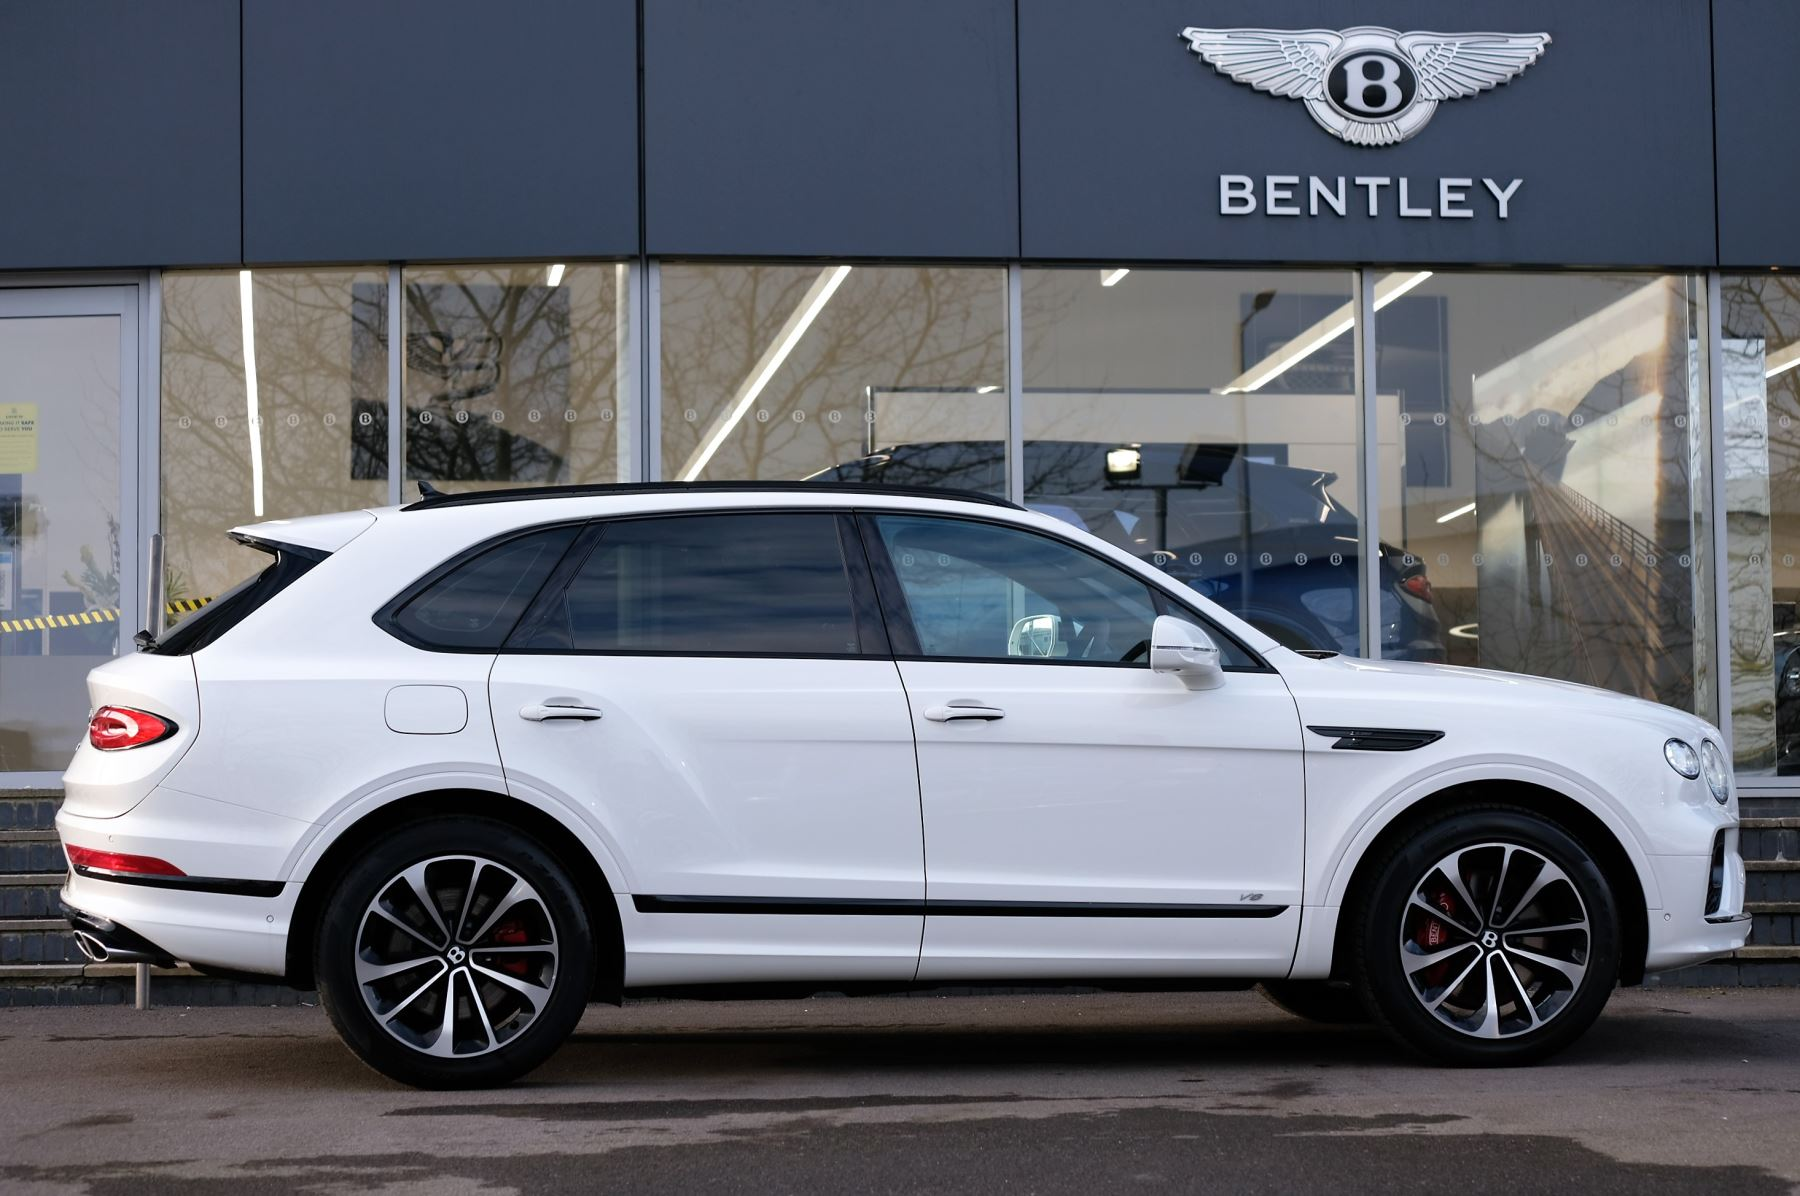 Bentley Bentayga 0.0 4.0 V8 - Touring and Front Seat Comfort Specificat